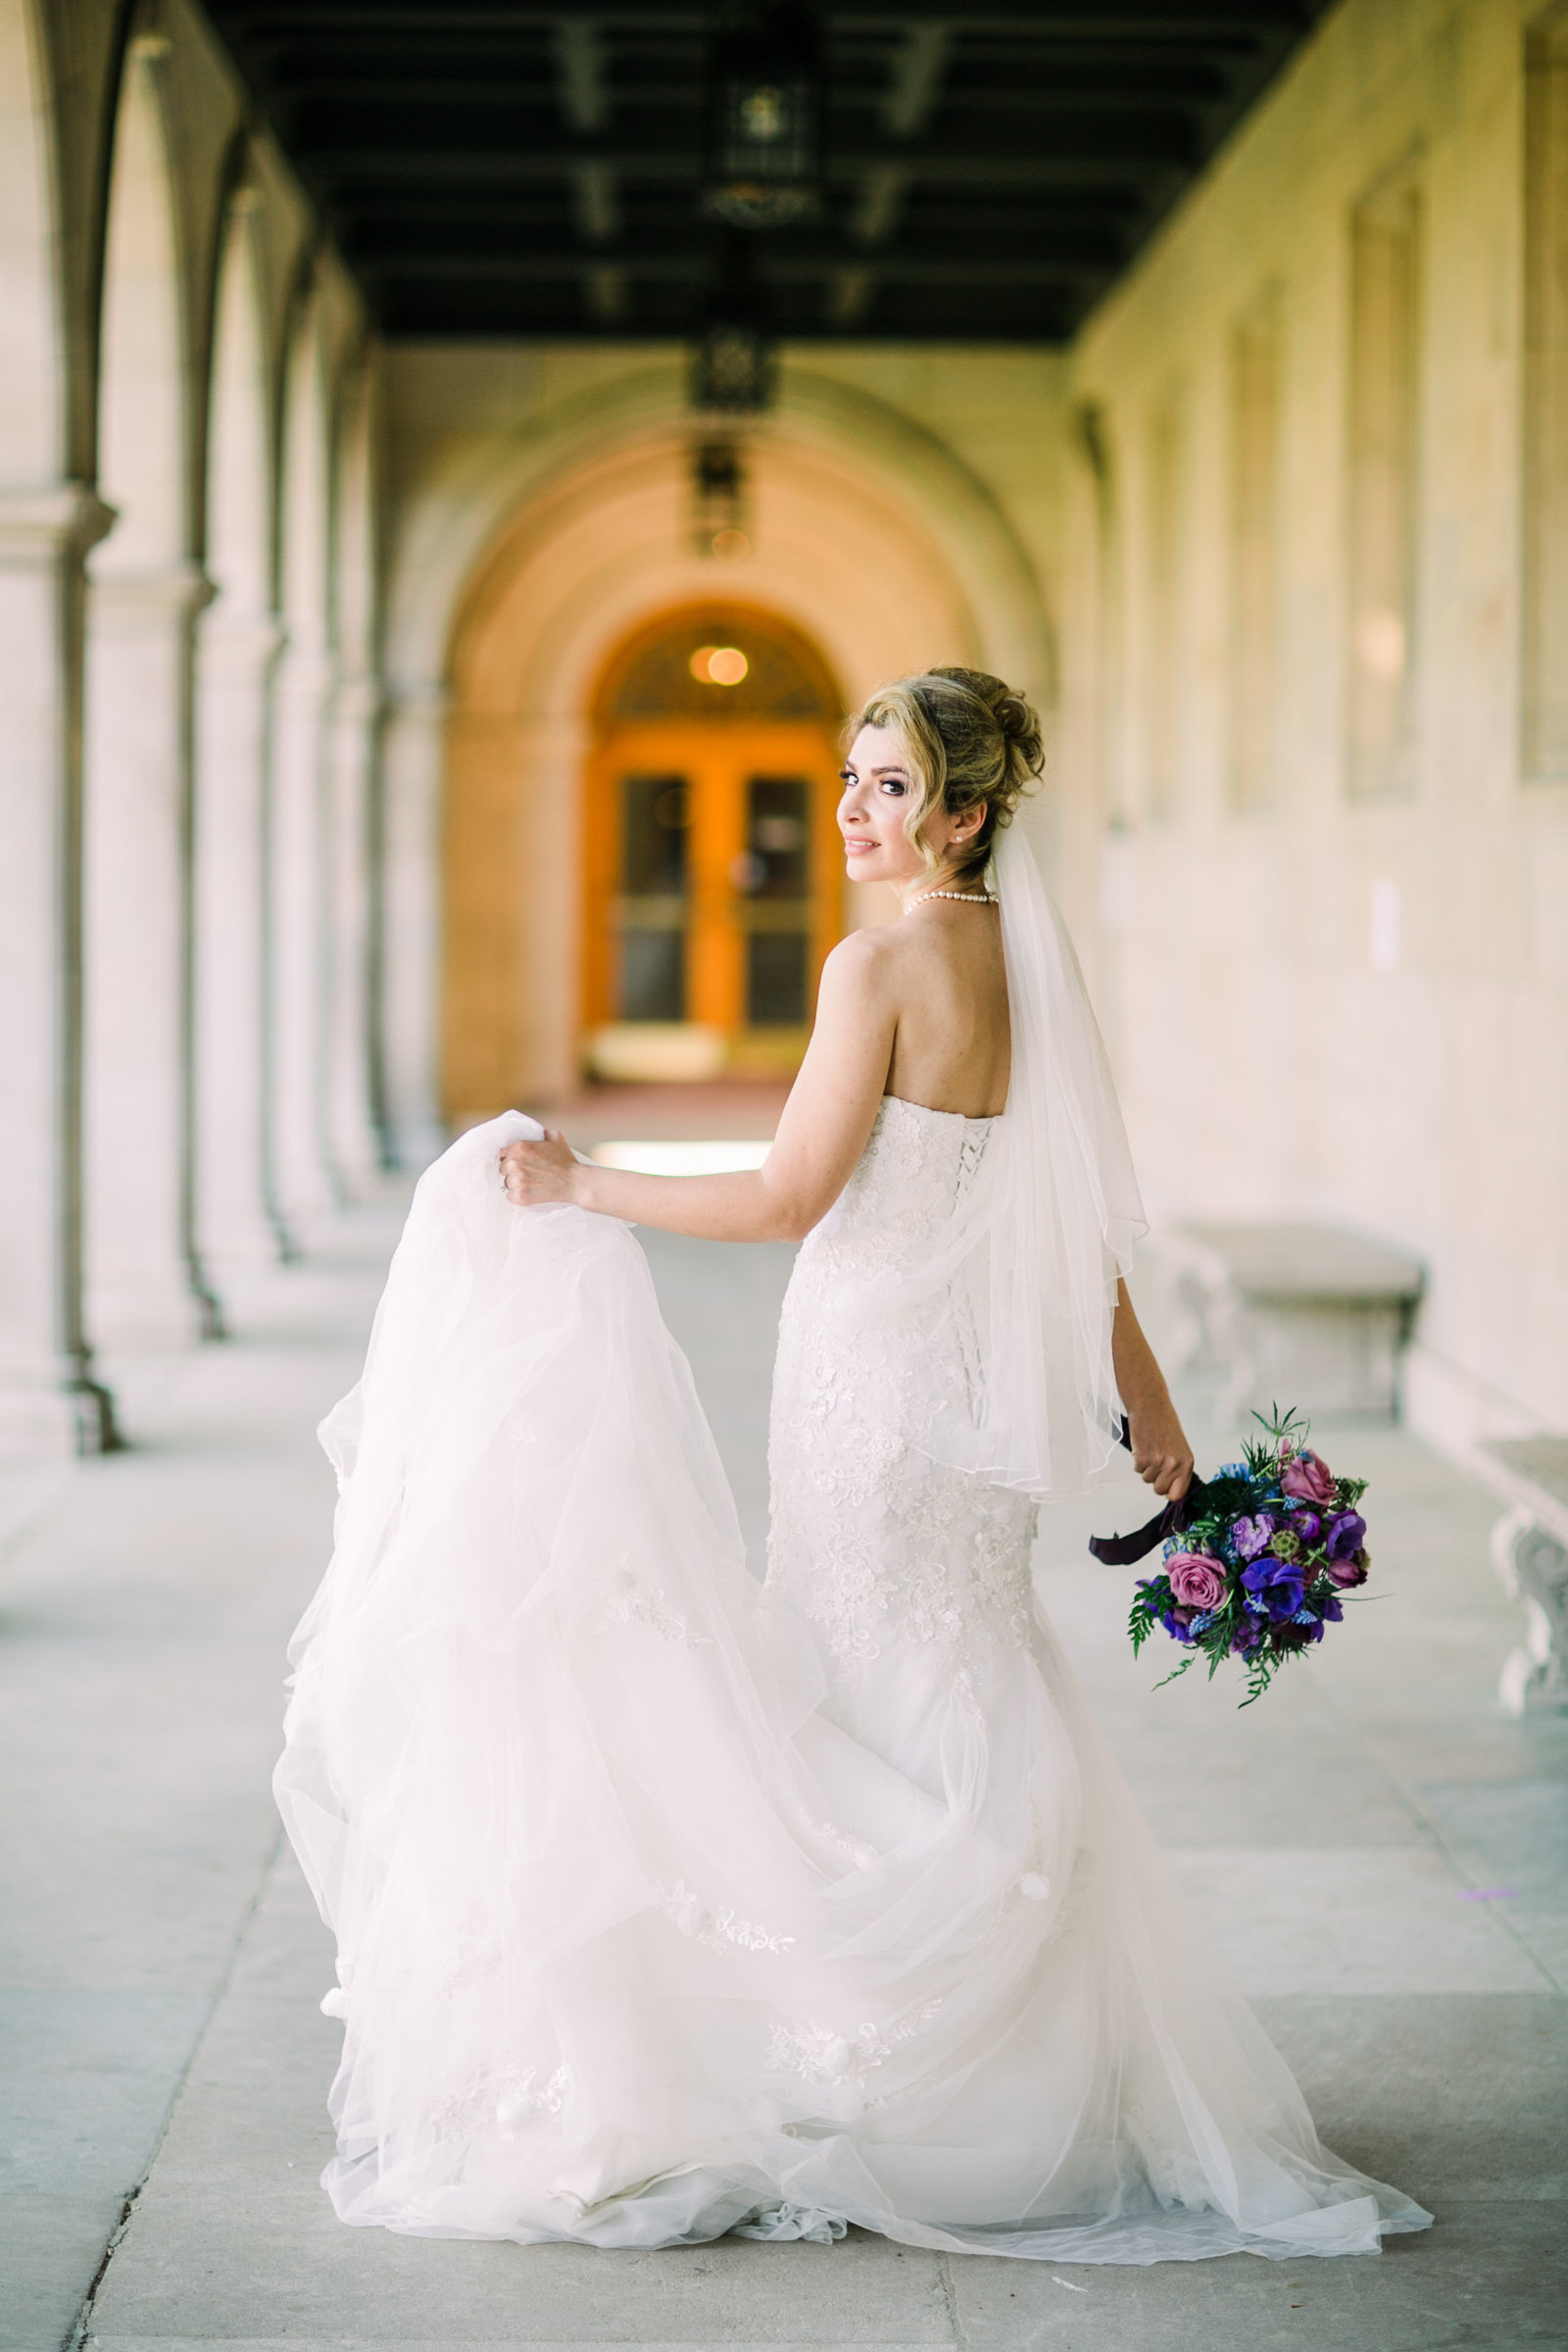 Bride, Zohra, walks away wedding dress train in hand down a hall of Washington University.